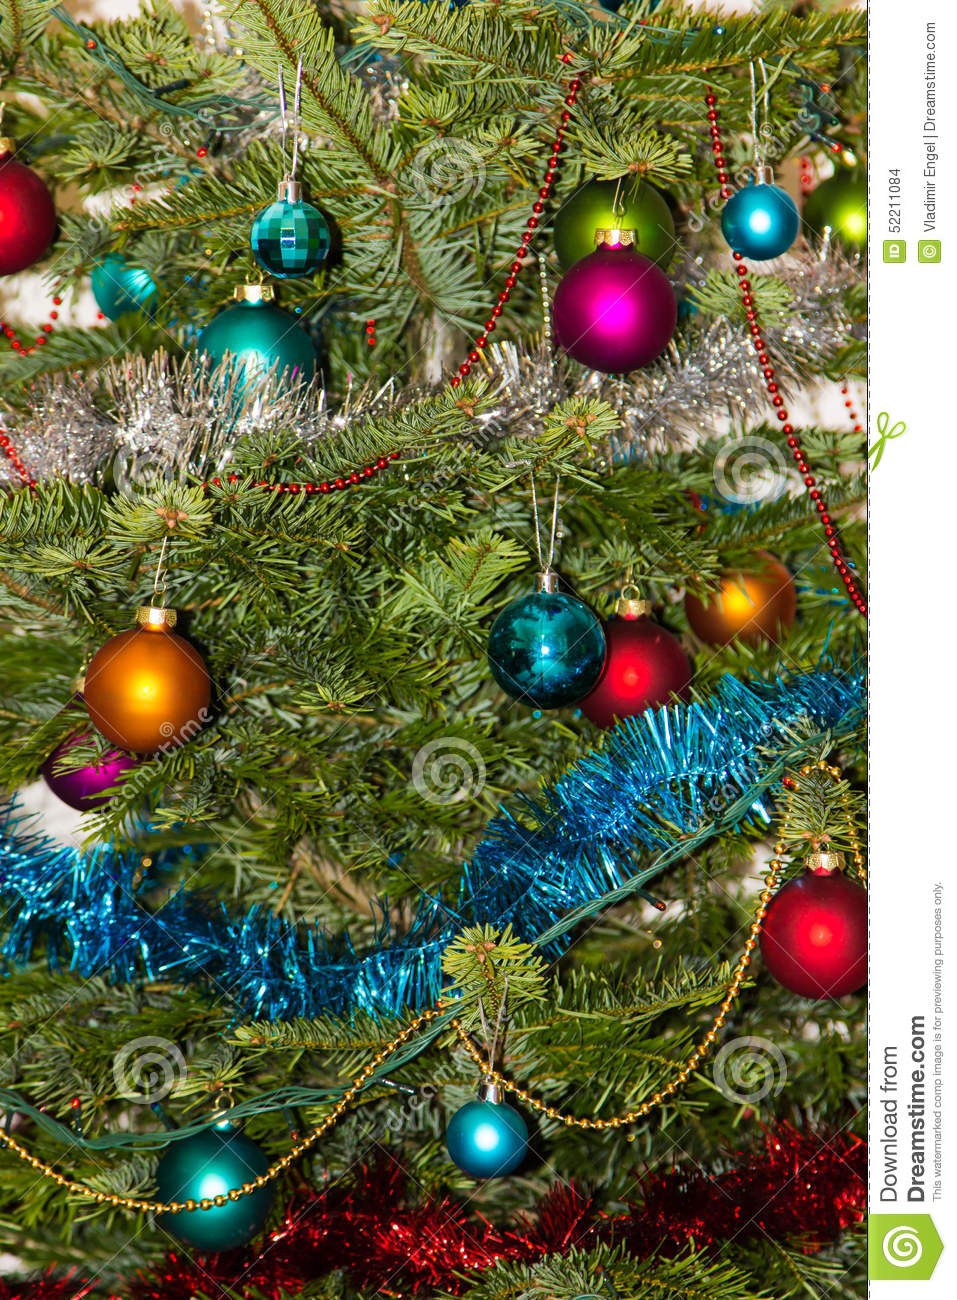 Christmas tree decorations 2015 new year stock photo Sample christmas tree decorating ideas